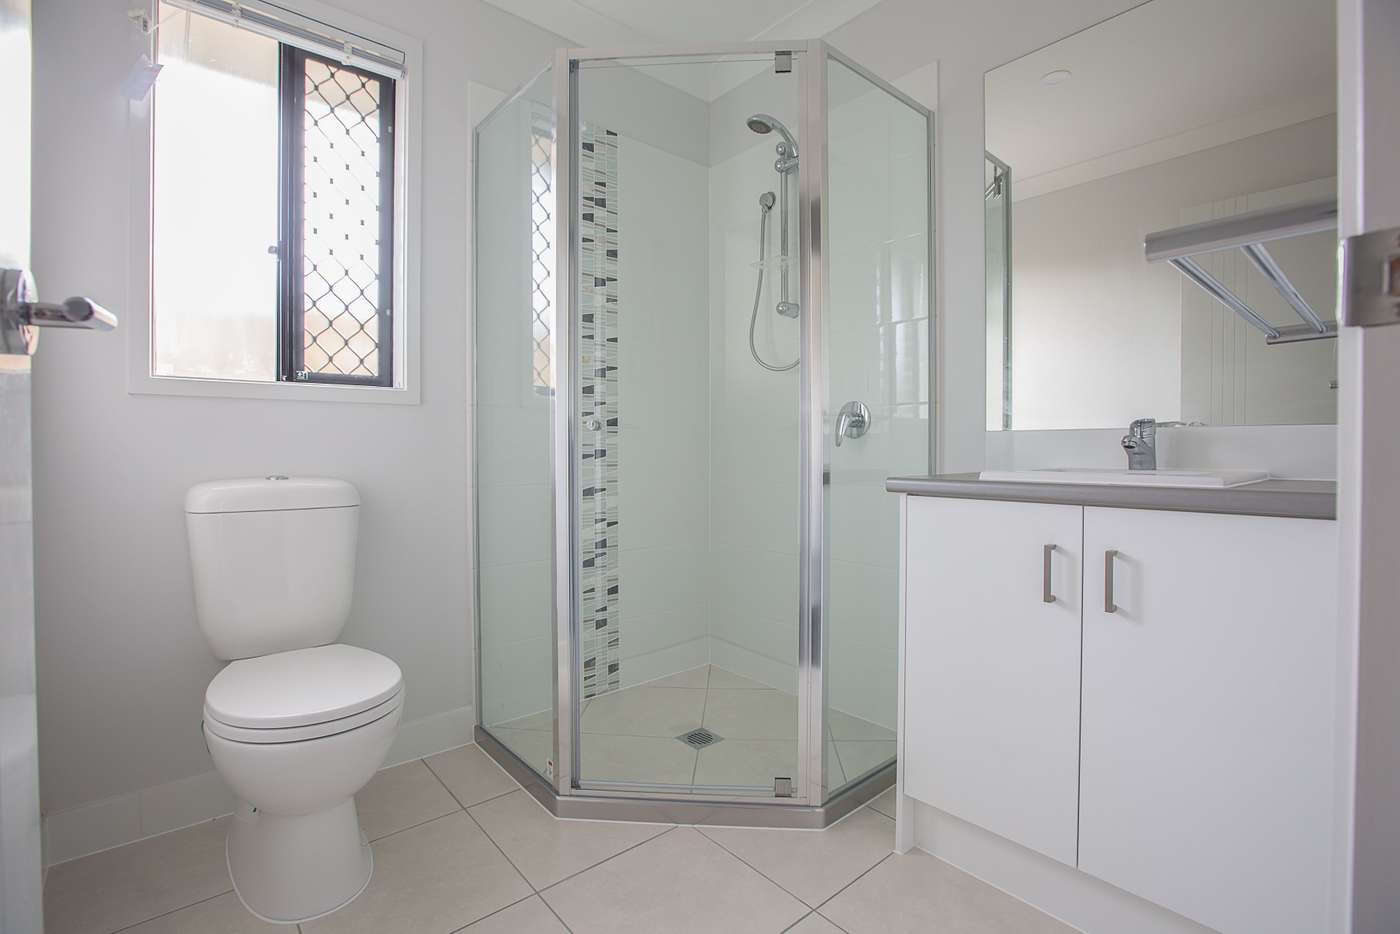 Seventh view of Homely house listing, 36 Shilin Street, Yarrabilba QLD 4207